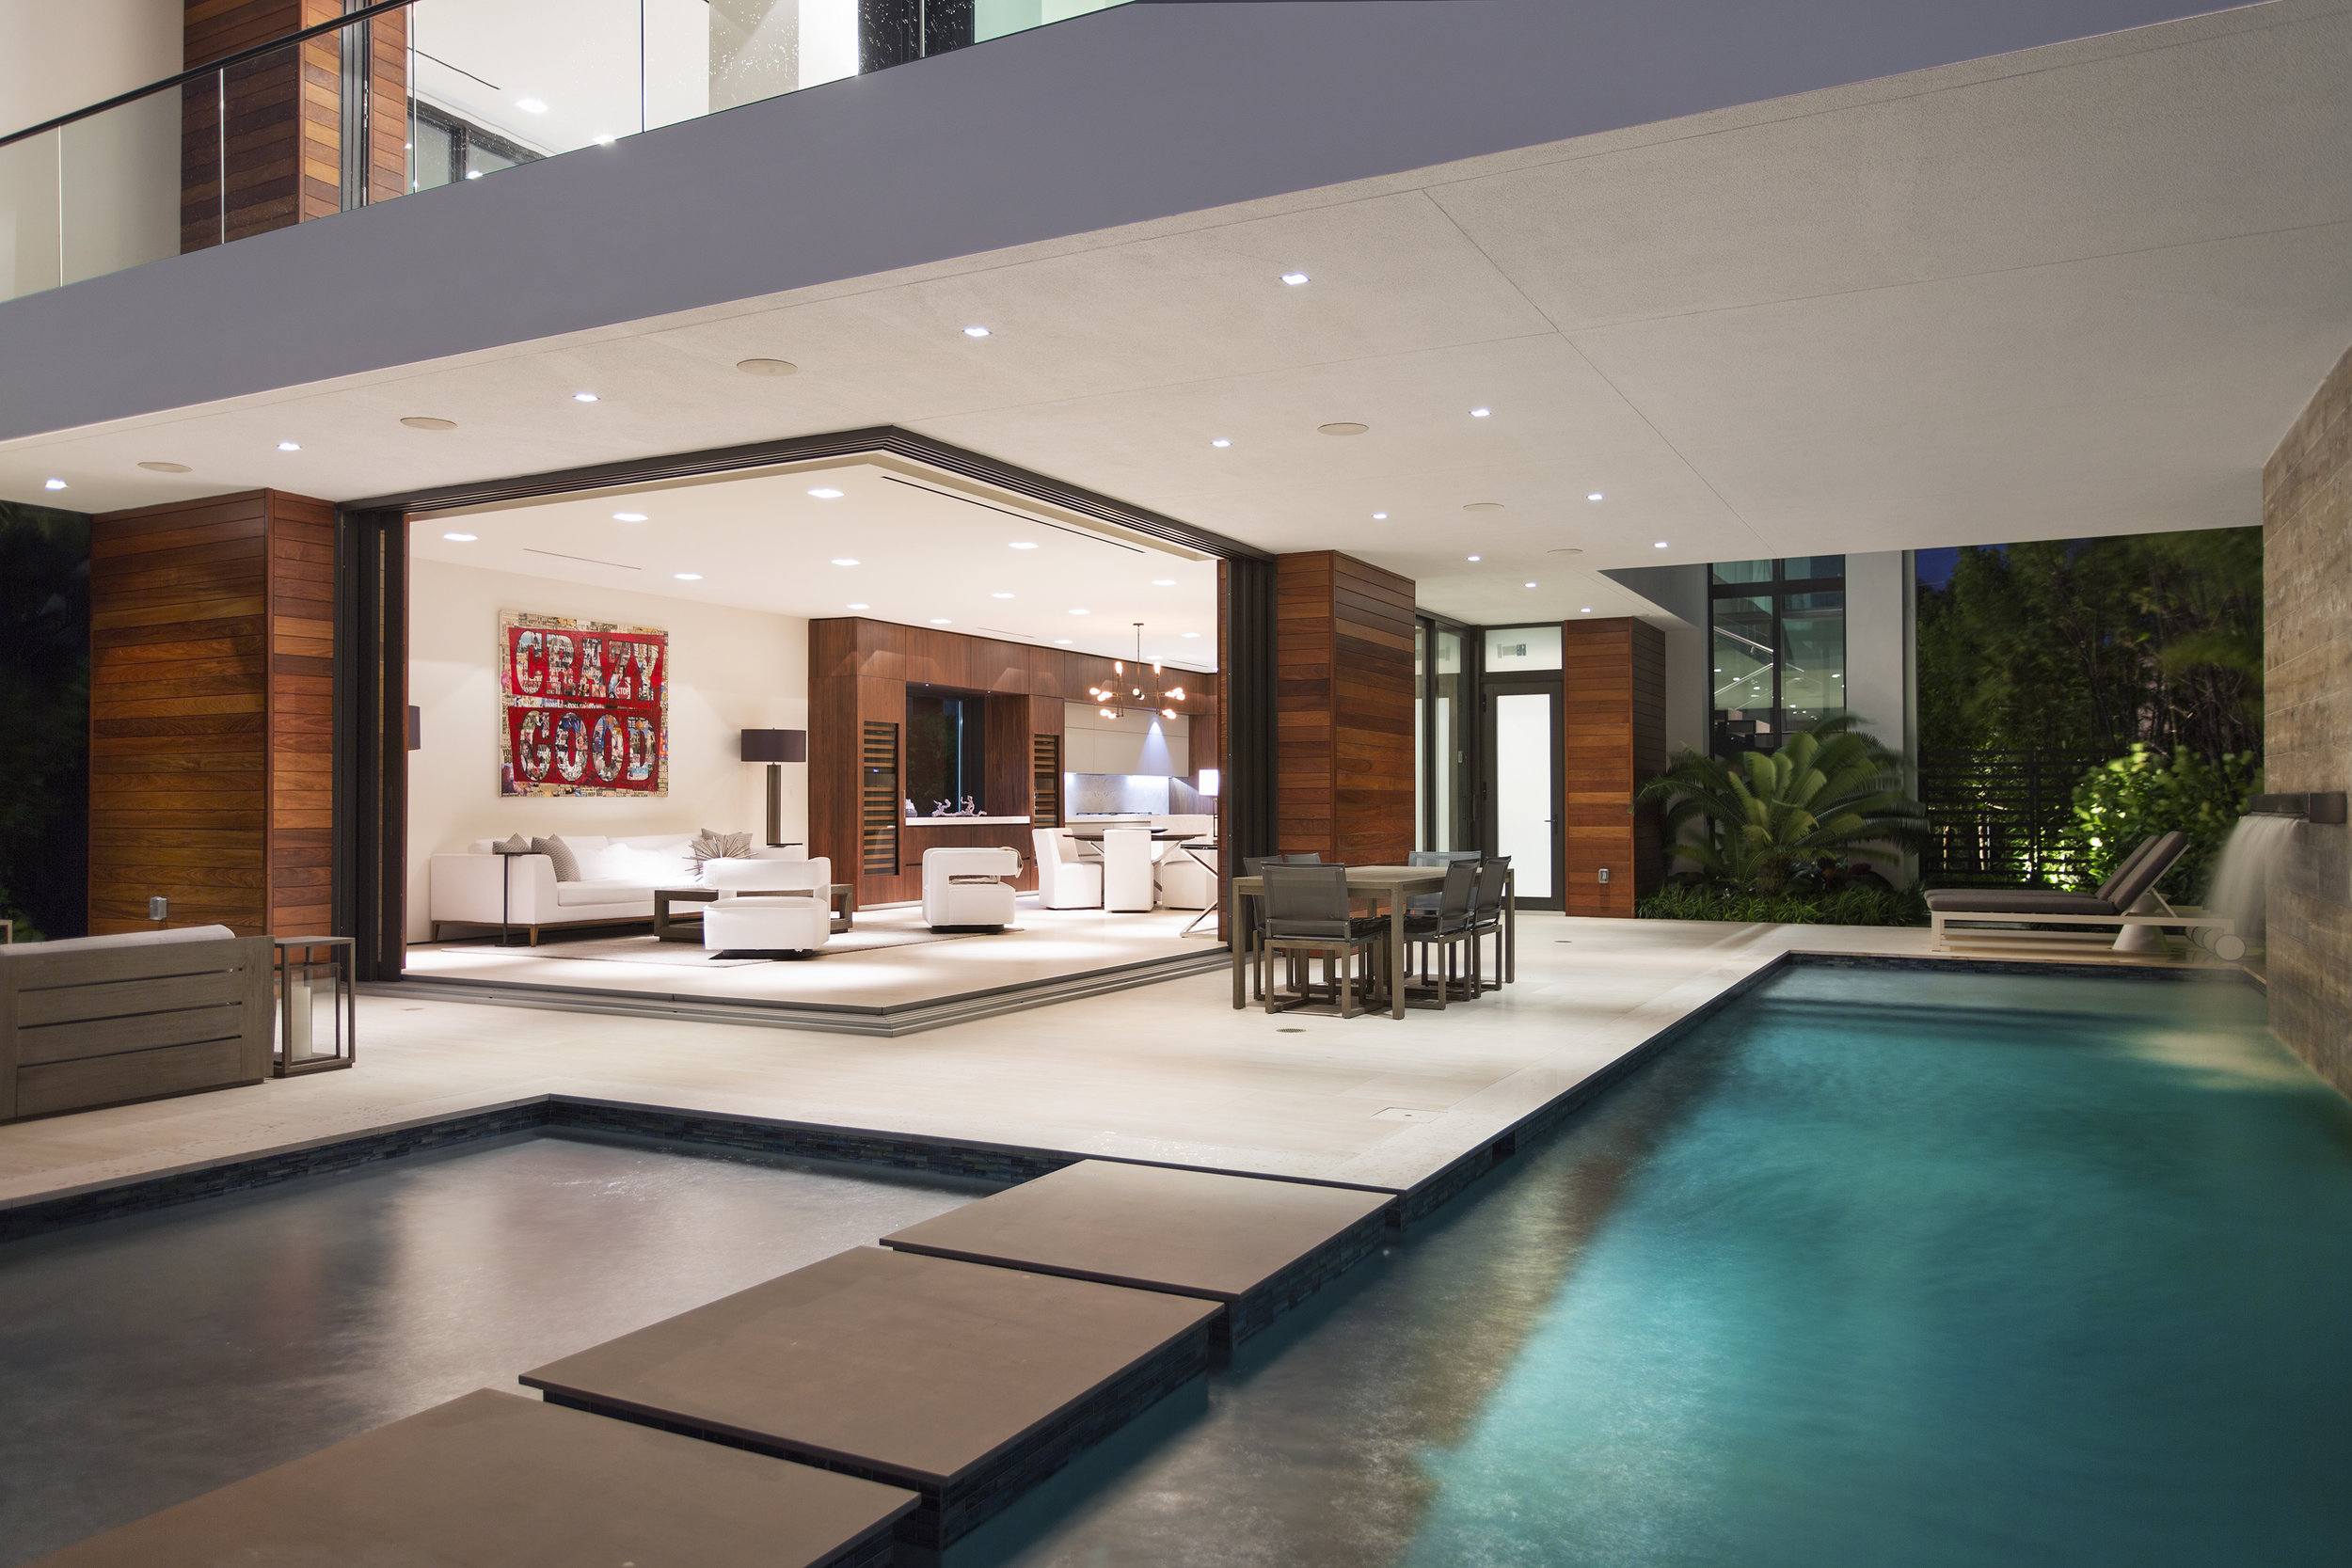 Tour The Hibiscus Island Contemporary Designed By Choeff Levy Fischman To Combat Sea-Level Rise